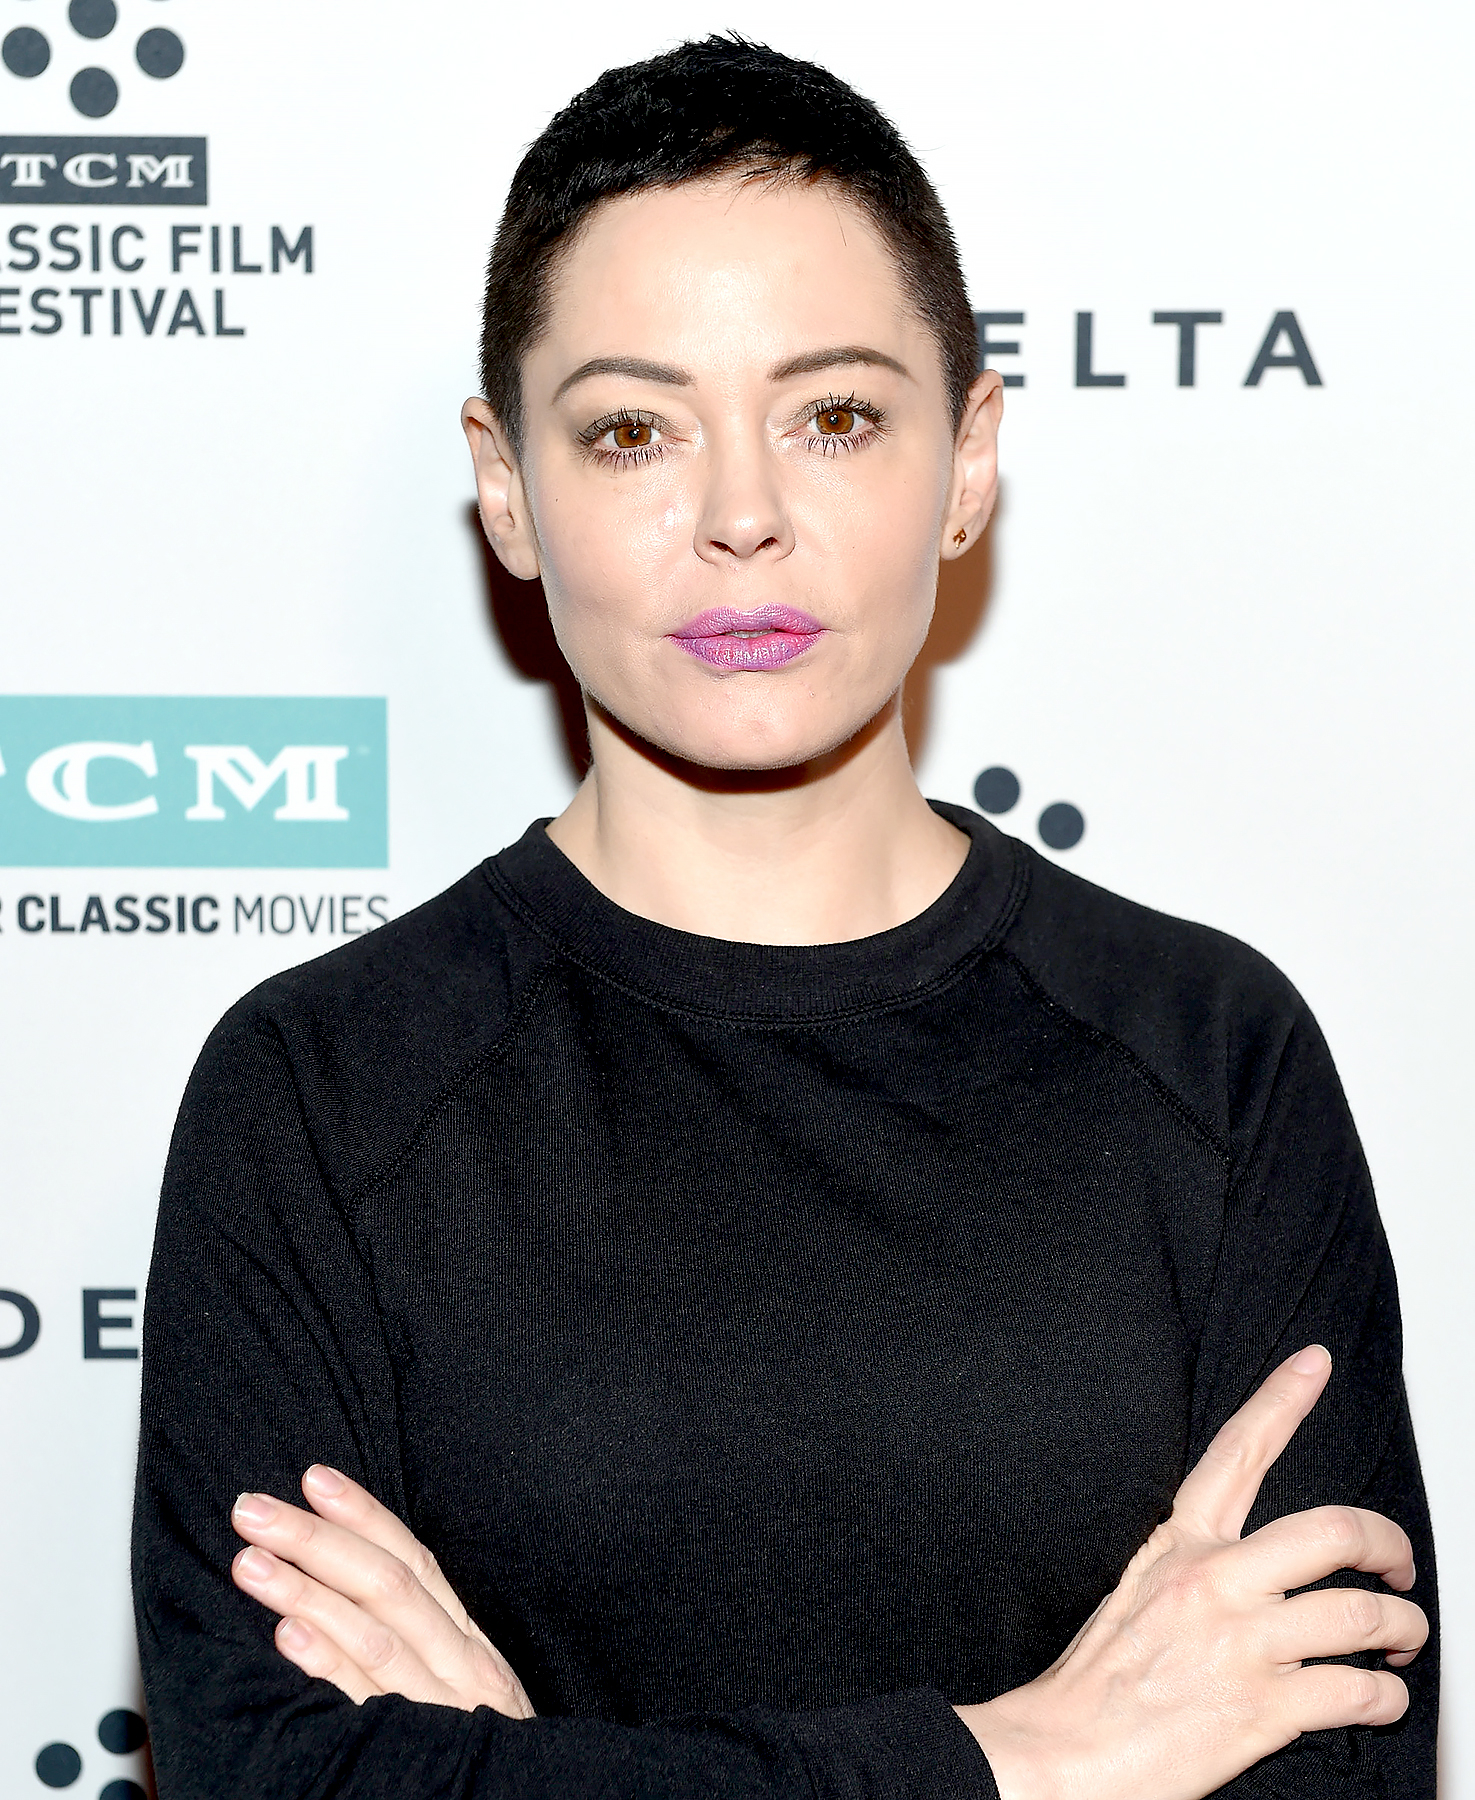 Rose McGowan Slams Actresses Choosing To Wear Black During The Golden Globes